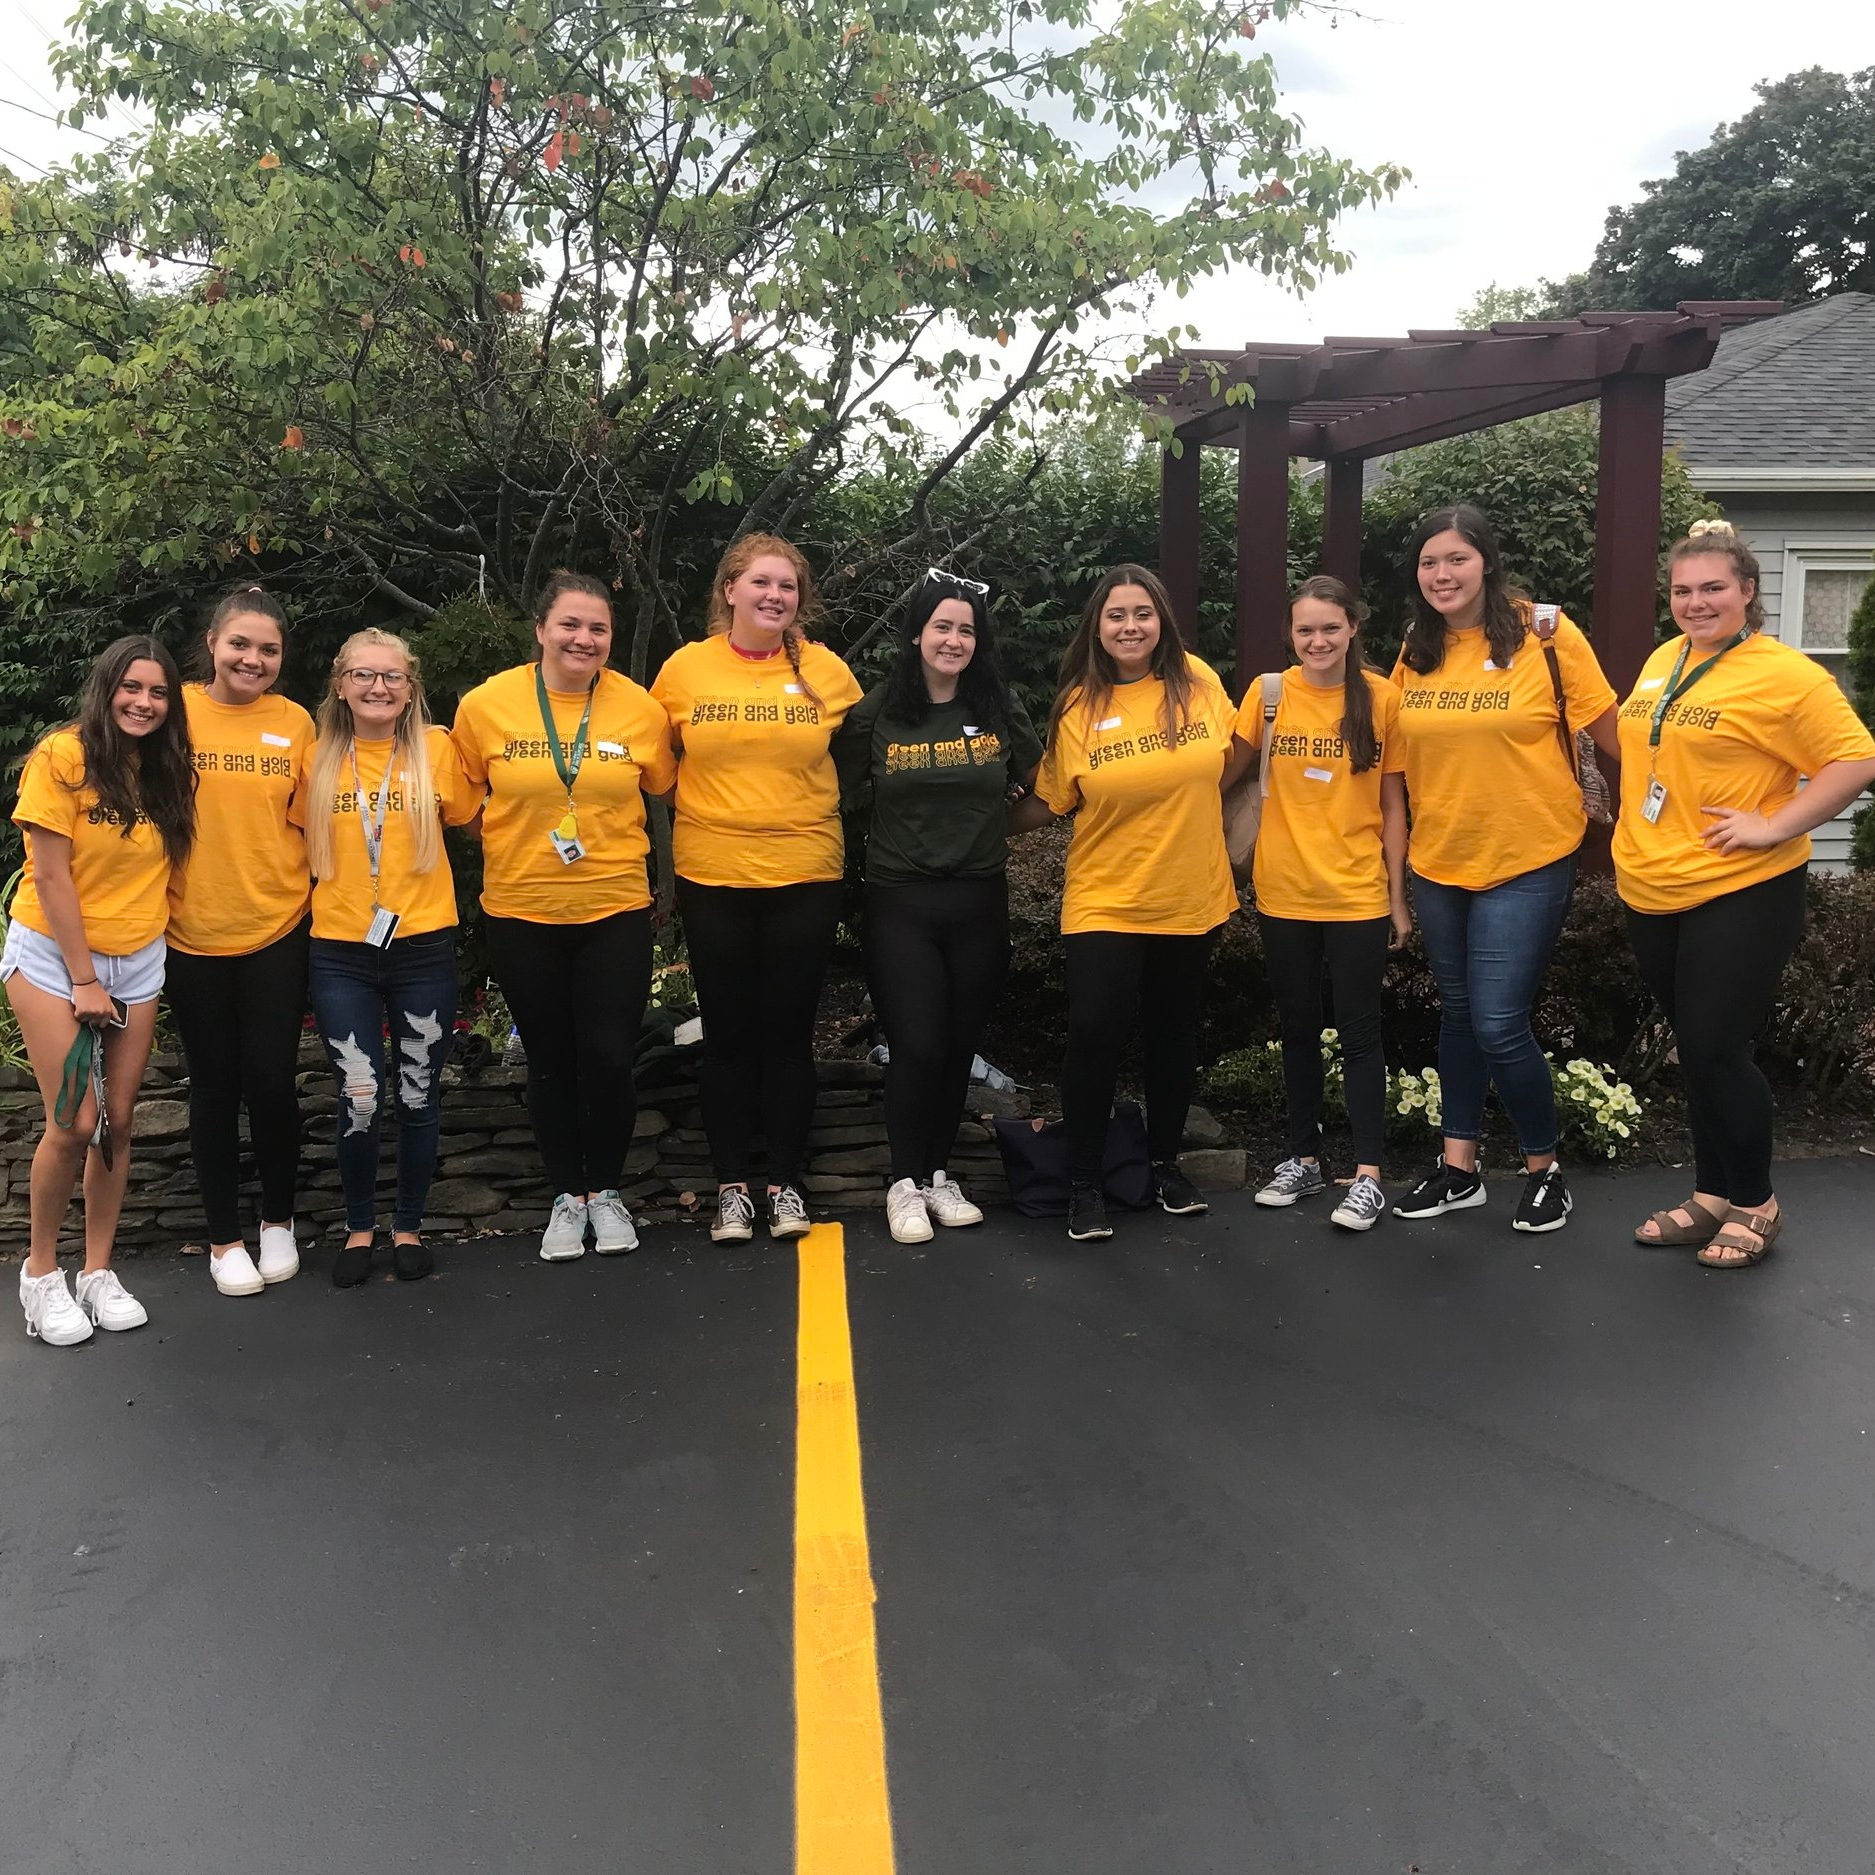 Thank you to the students from Brockport Day of Service for volunteering at our office. It was a delight to have you here!